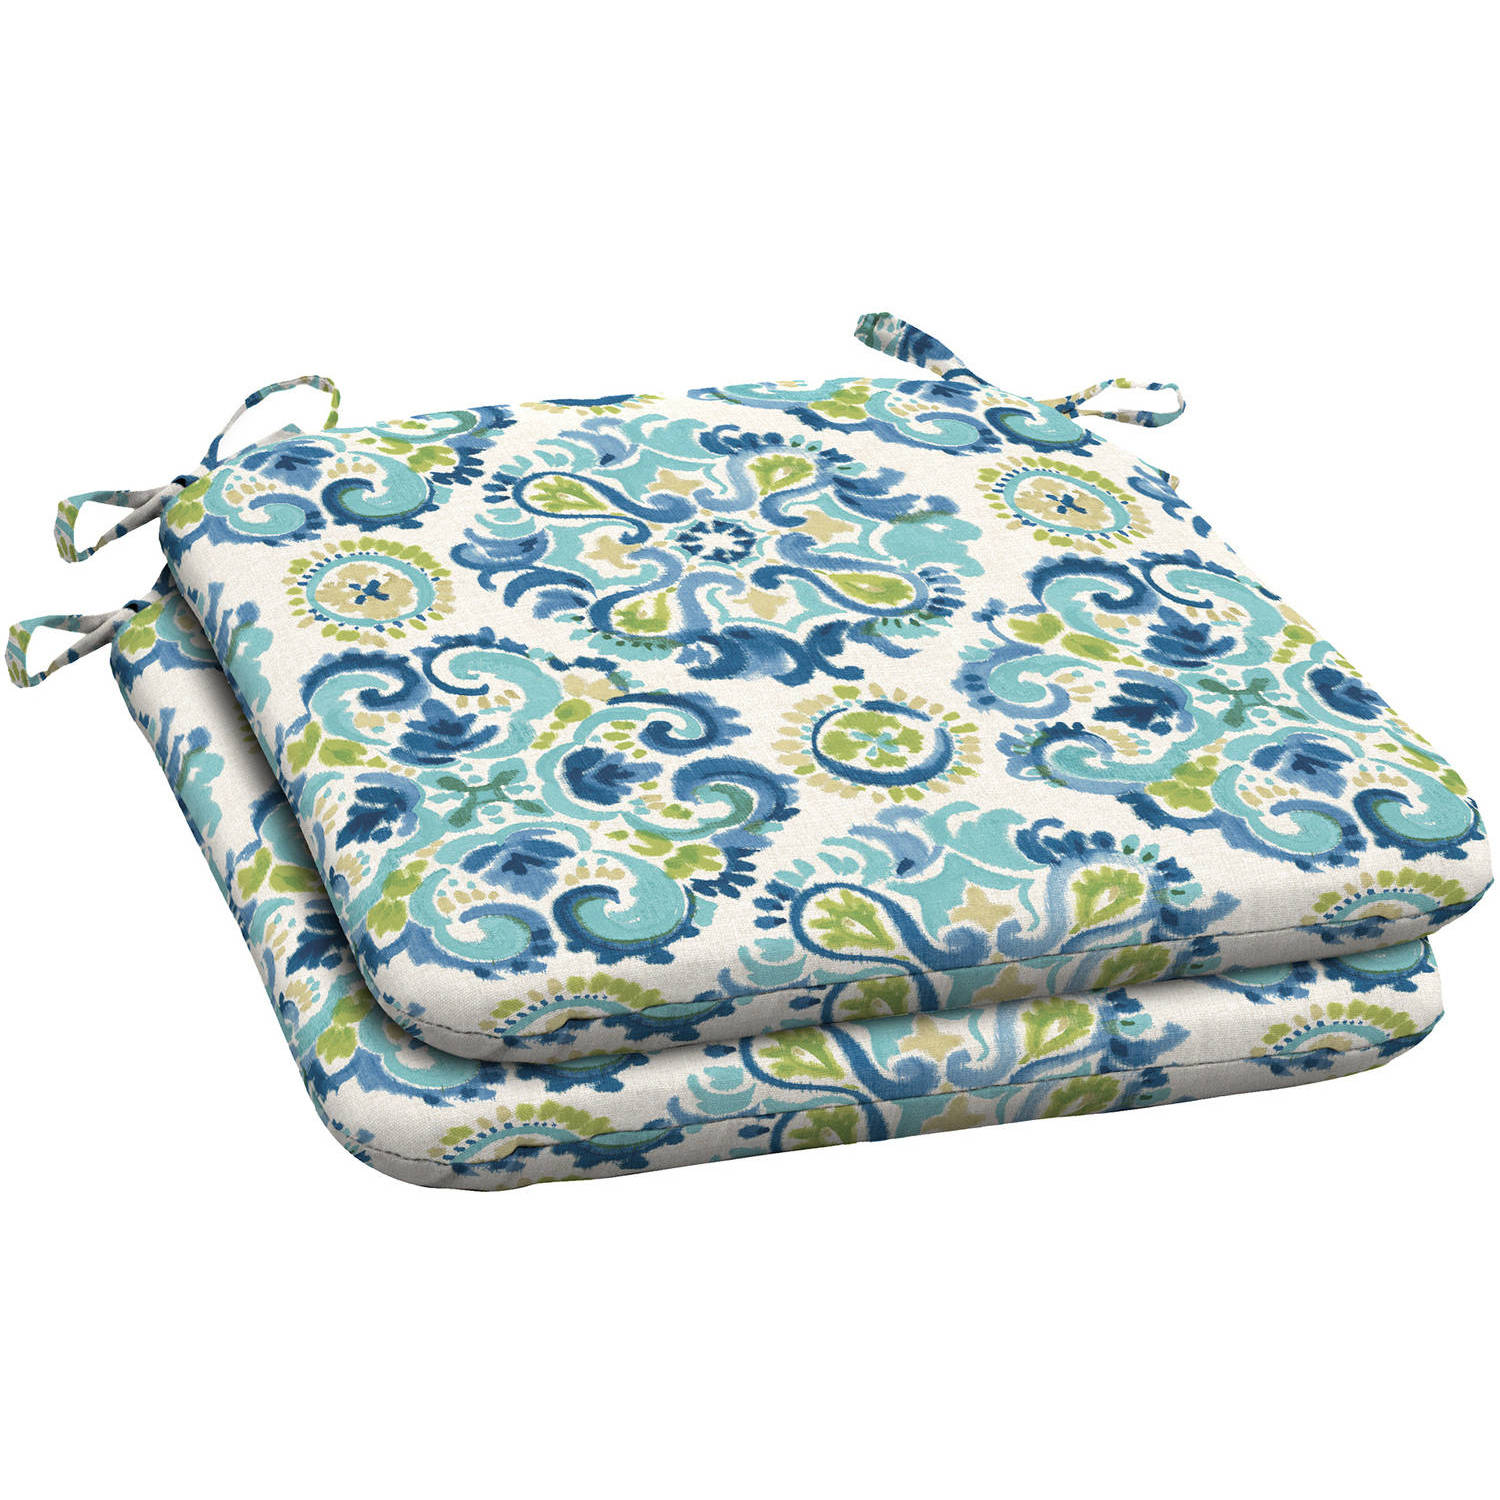 Better Homes and Gardens Blue Green Universal Seat Pad, Set of 2, Blue Green Medallion